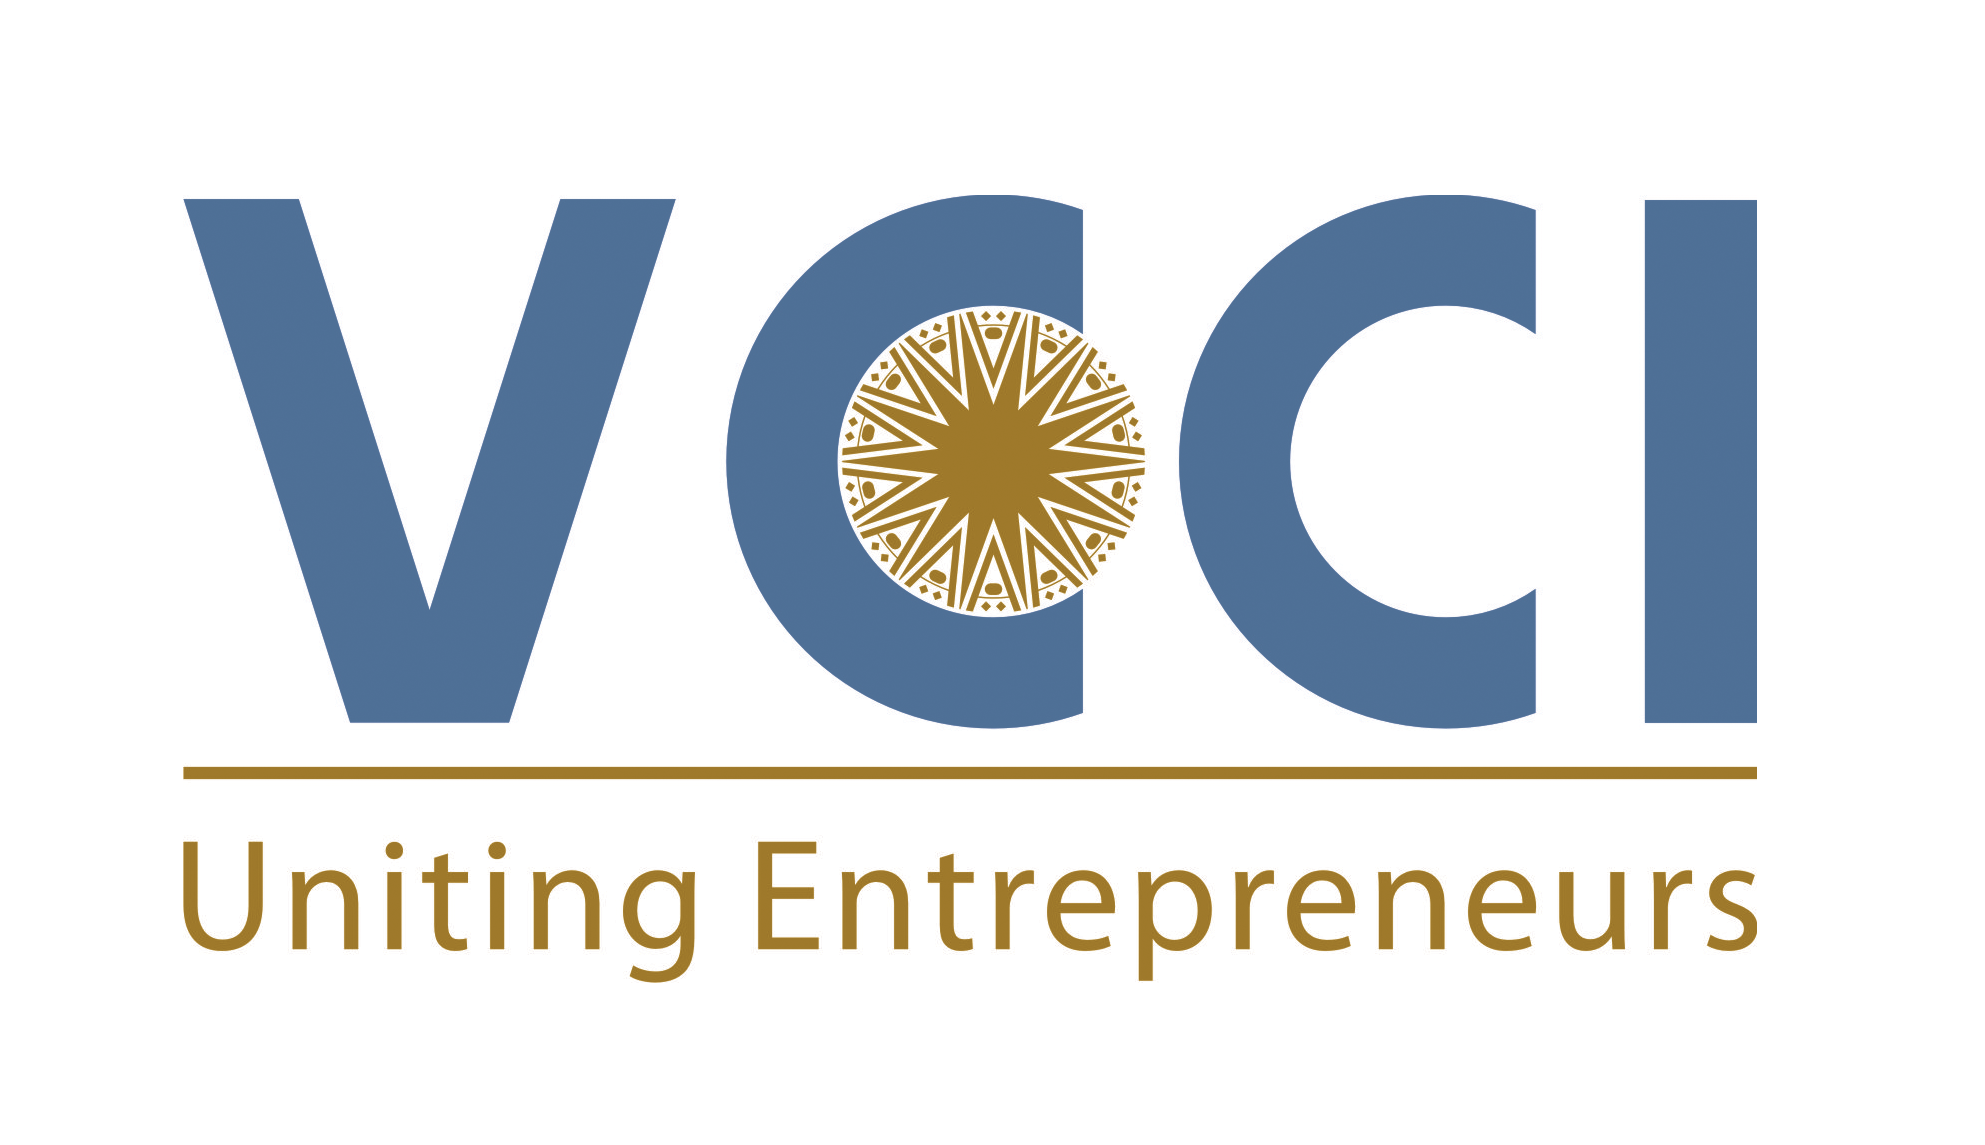 The Vietnam Chamber of Commerce and Industry (VCCI)